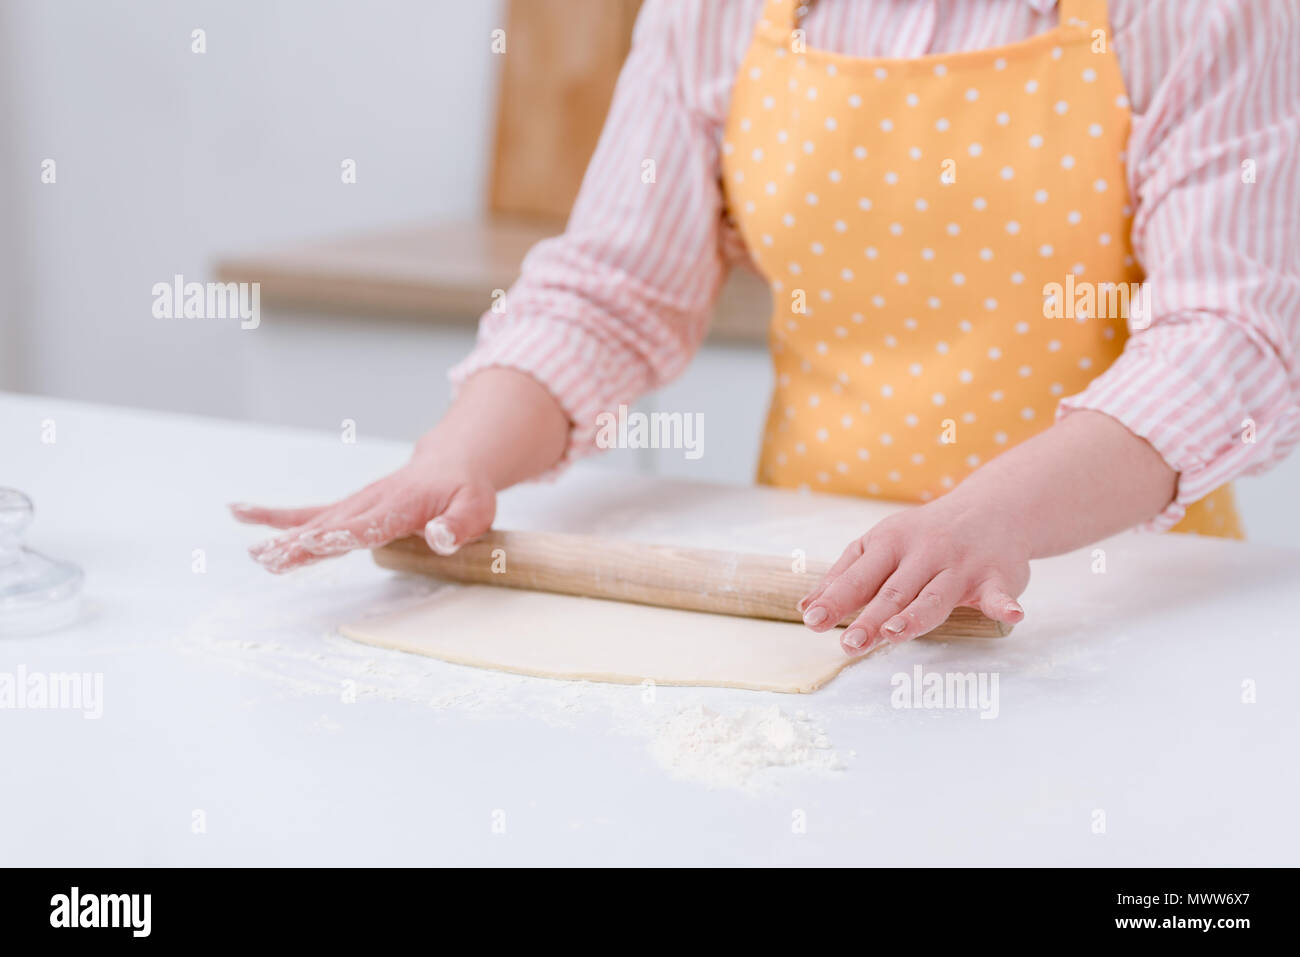 cropped shot of woman rolling dough for pastry at kitchen - Stock Image